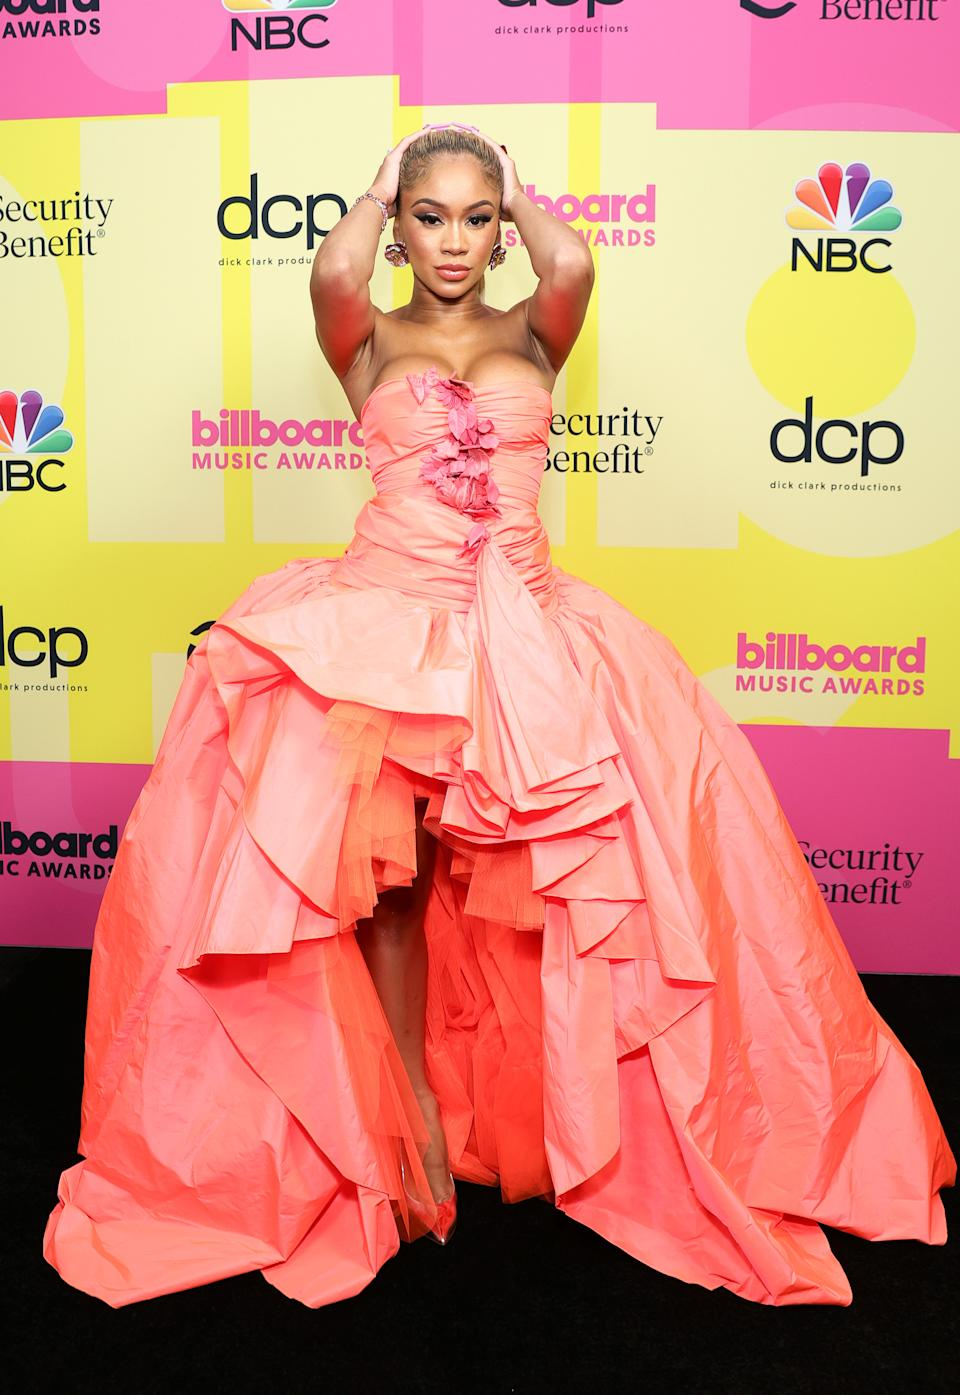 LOS ANGELES, CALIFORNIA - MAY 23: In this image released on May 23, Saweetie poses backstage for the 2021 Billboard Music Awards, broadcast on May 23, 2021 at Microsoft Theater in Los Angeles, California. (Photo by Rich Fury/Getty Images for dcp)